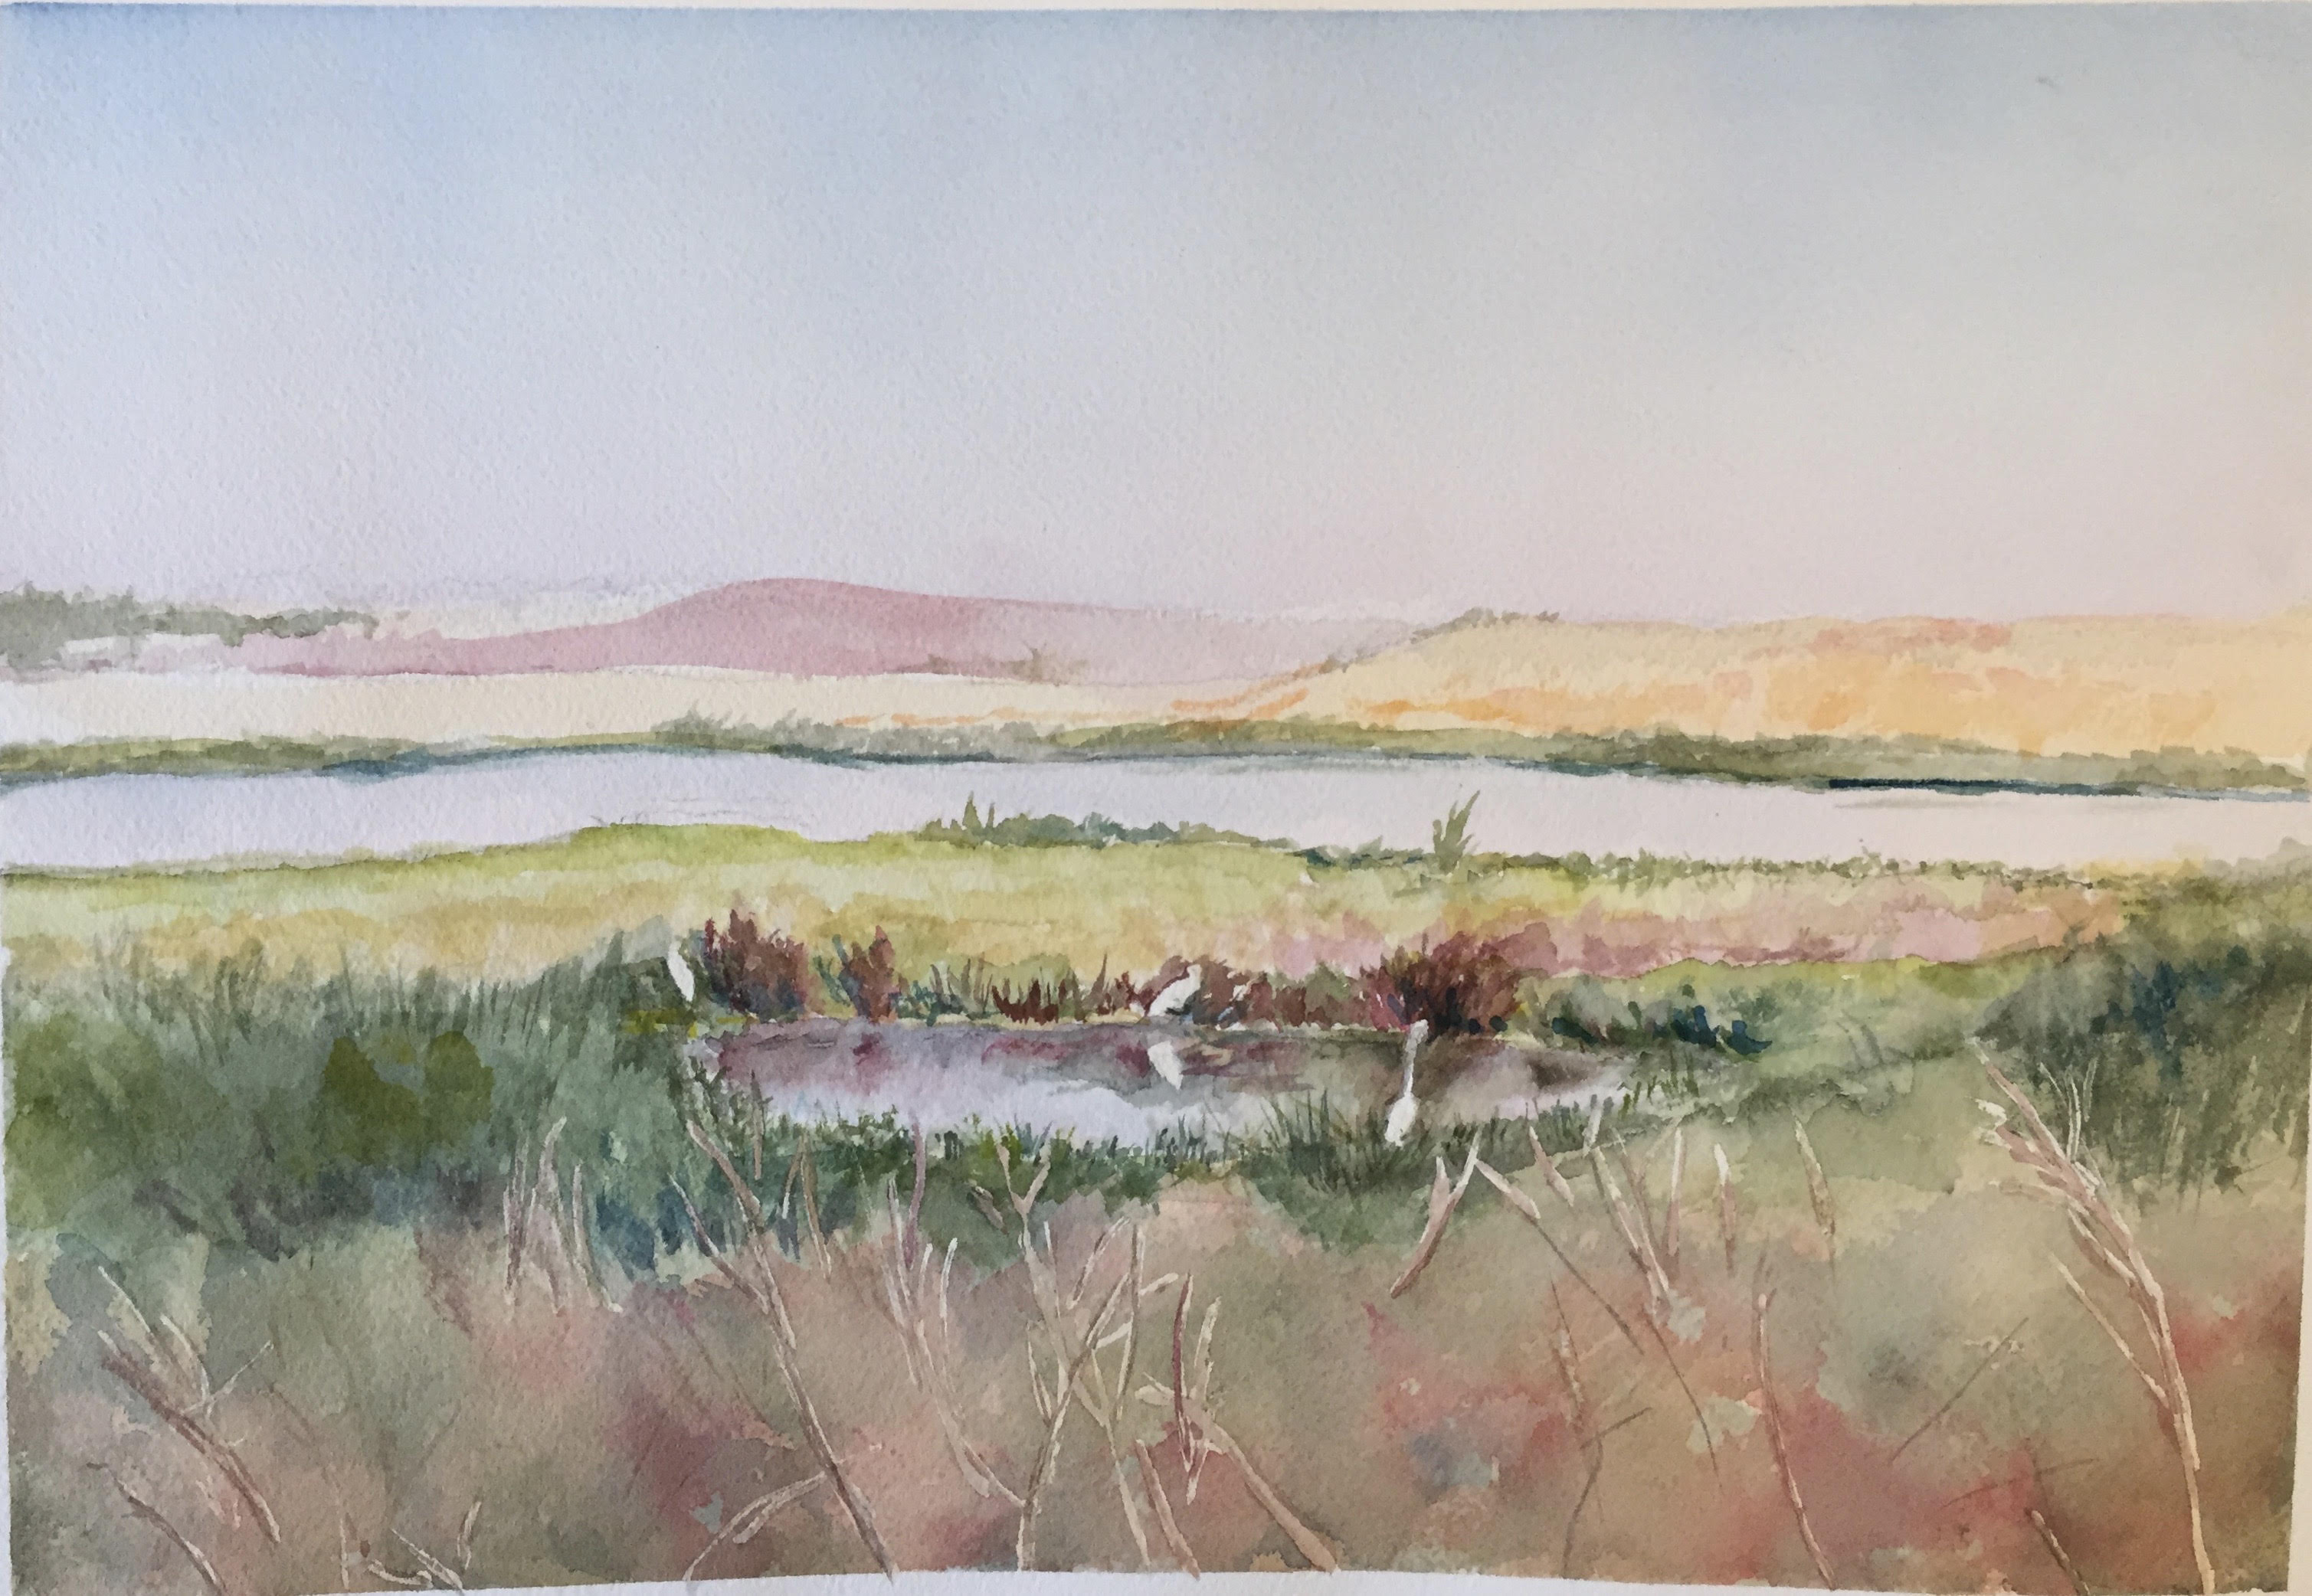 Bay Lands from Palo Alto - MBEarly